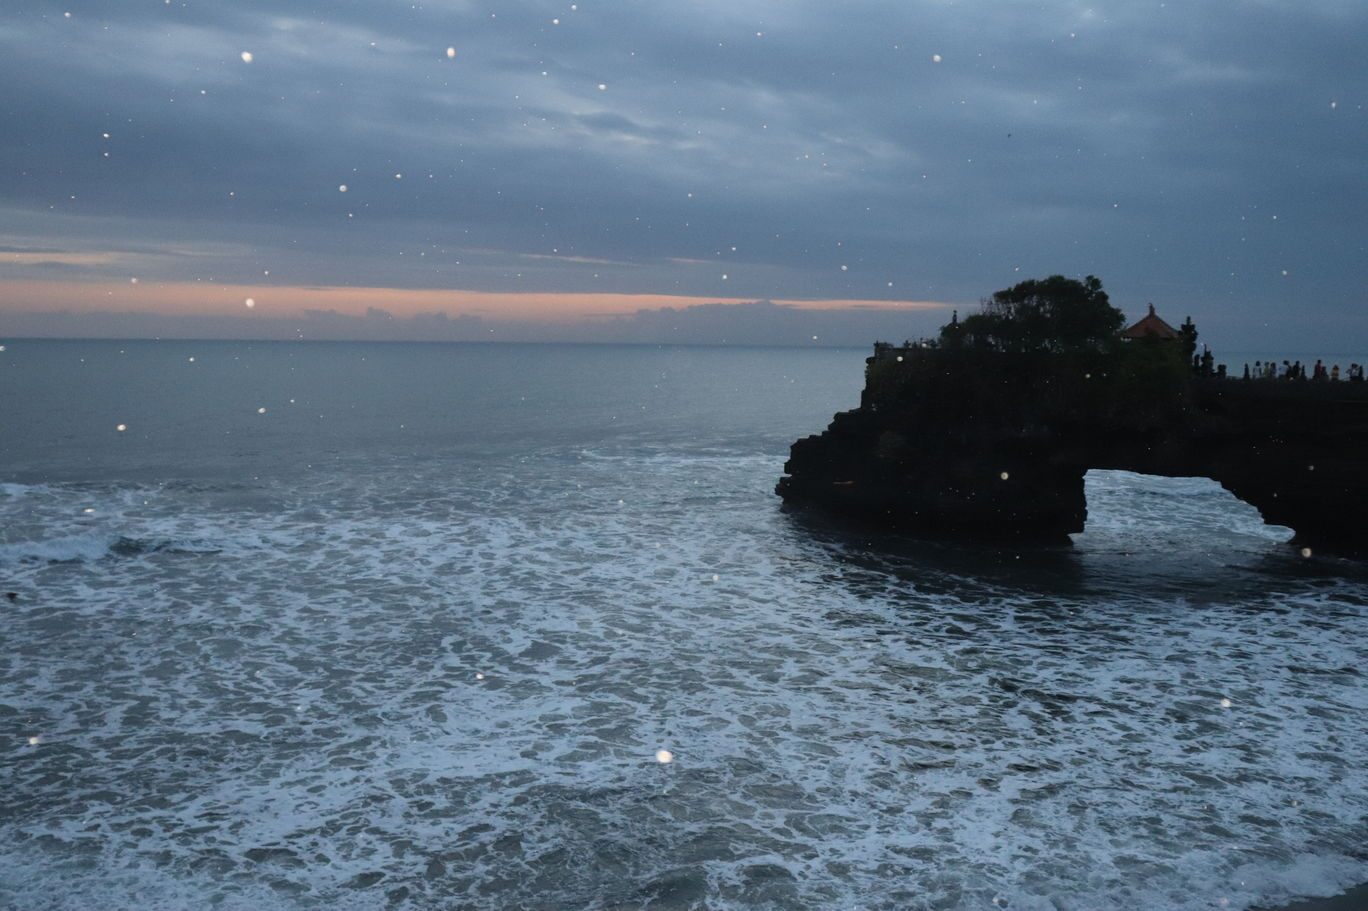 Photo of Tanah Lot By nishika choudhary